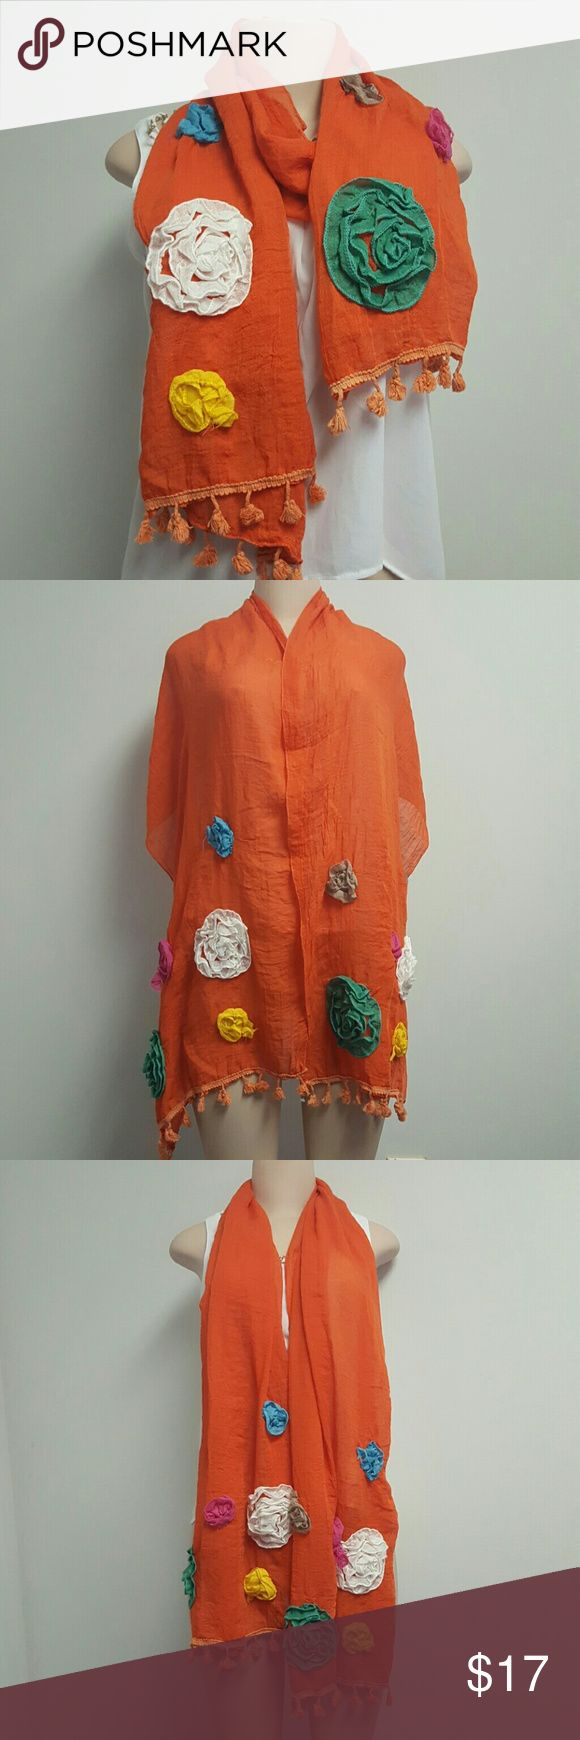 VINTAGE style orange embroidered scarf w/ flowers VINTAGE style orange embroidered scarf with colorful accent flowers. Tassles hanging at the bottom.  Boho / Boheme style. Accessories Scarves & Wraps